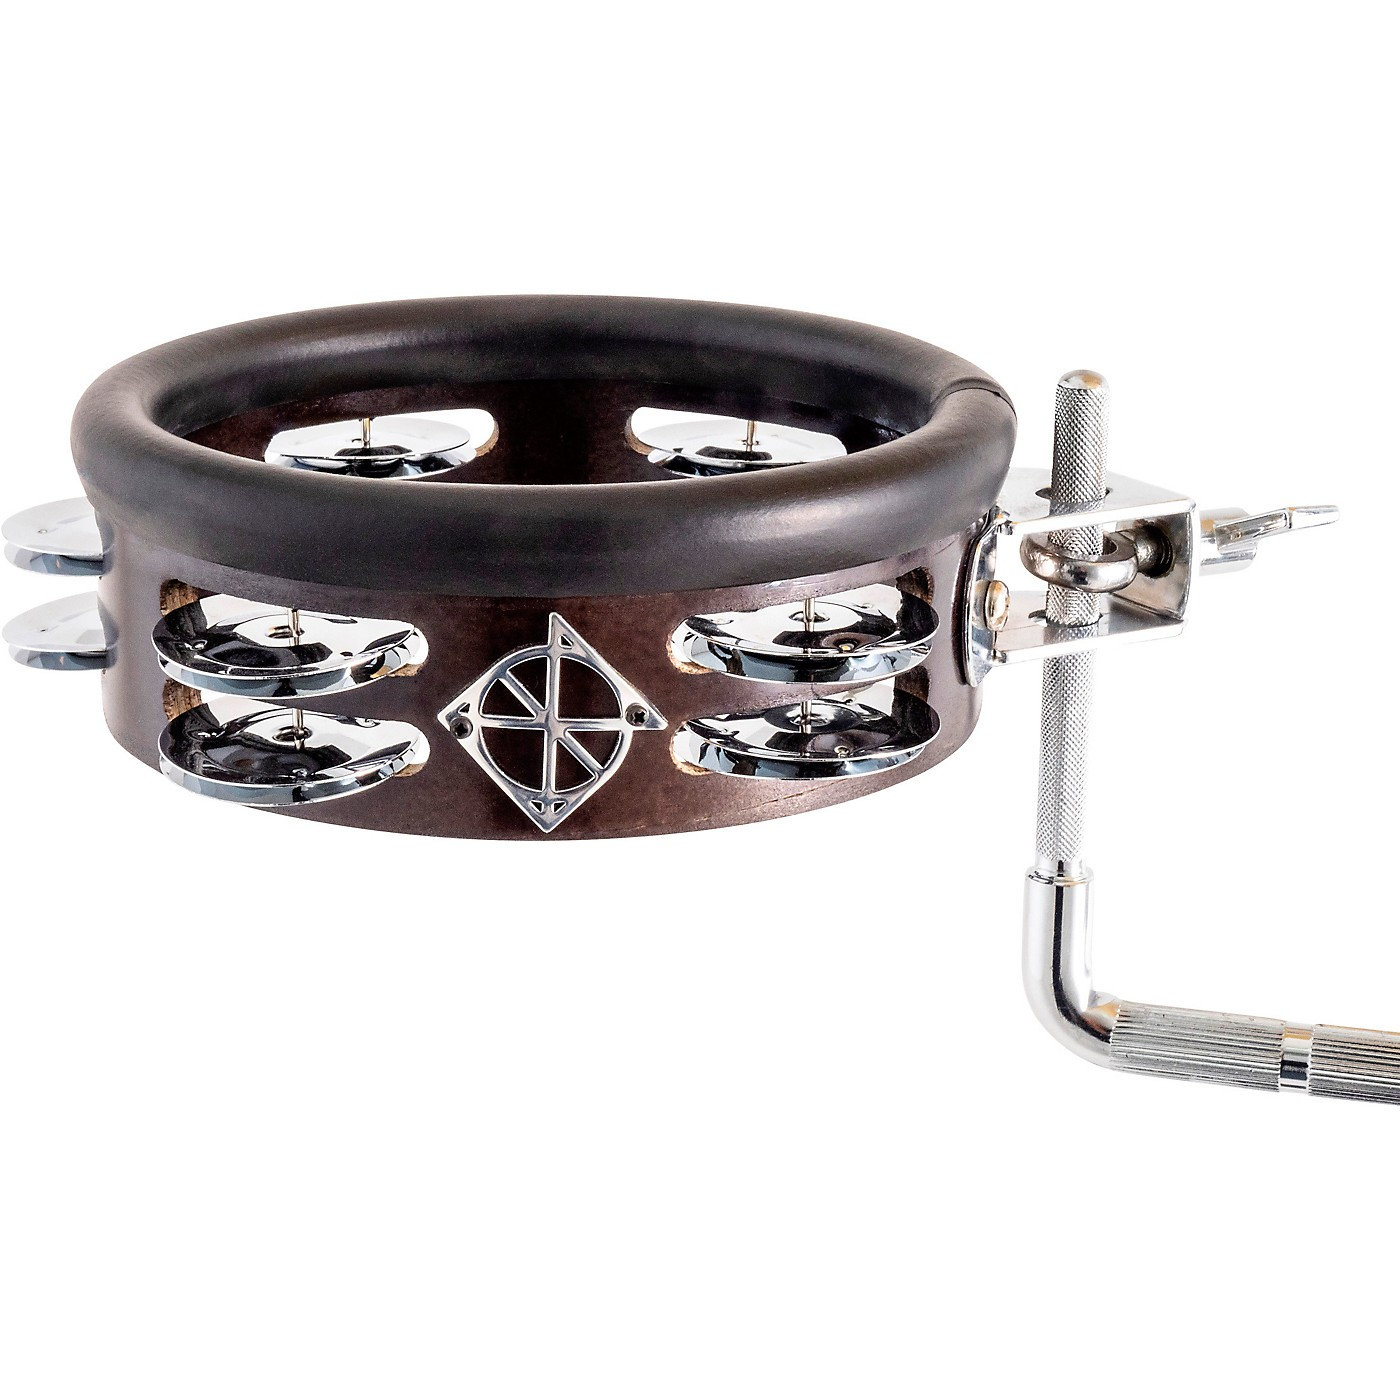 Dixon Little Roomer Mountable Wood Tambourine thumbnail